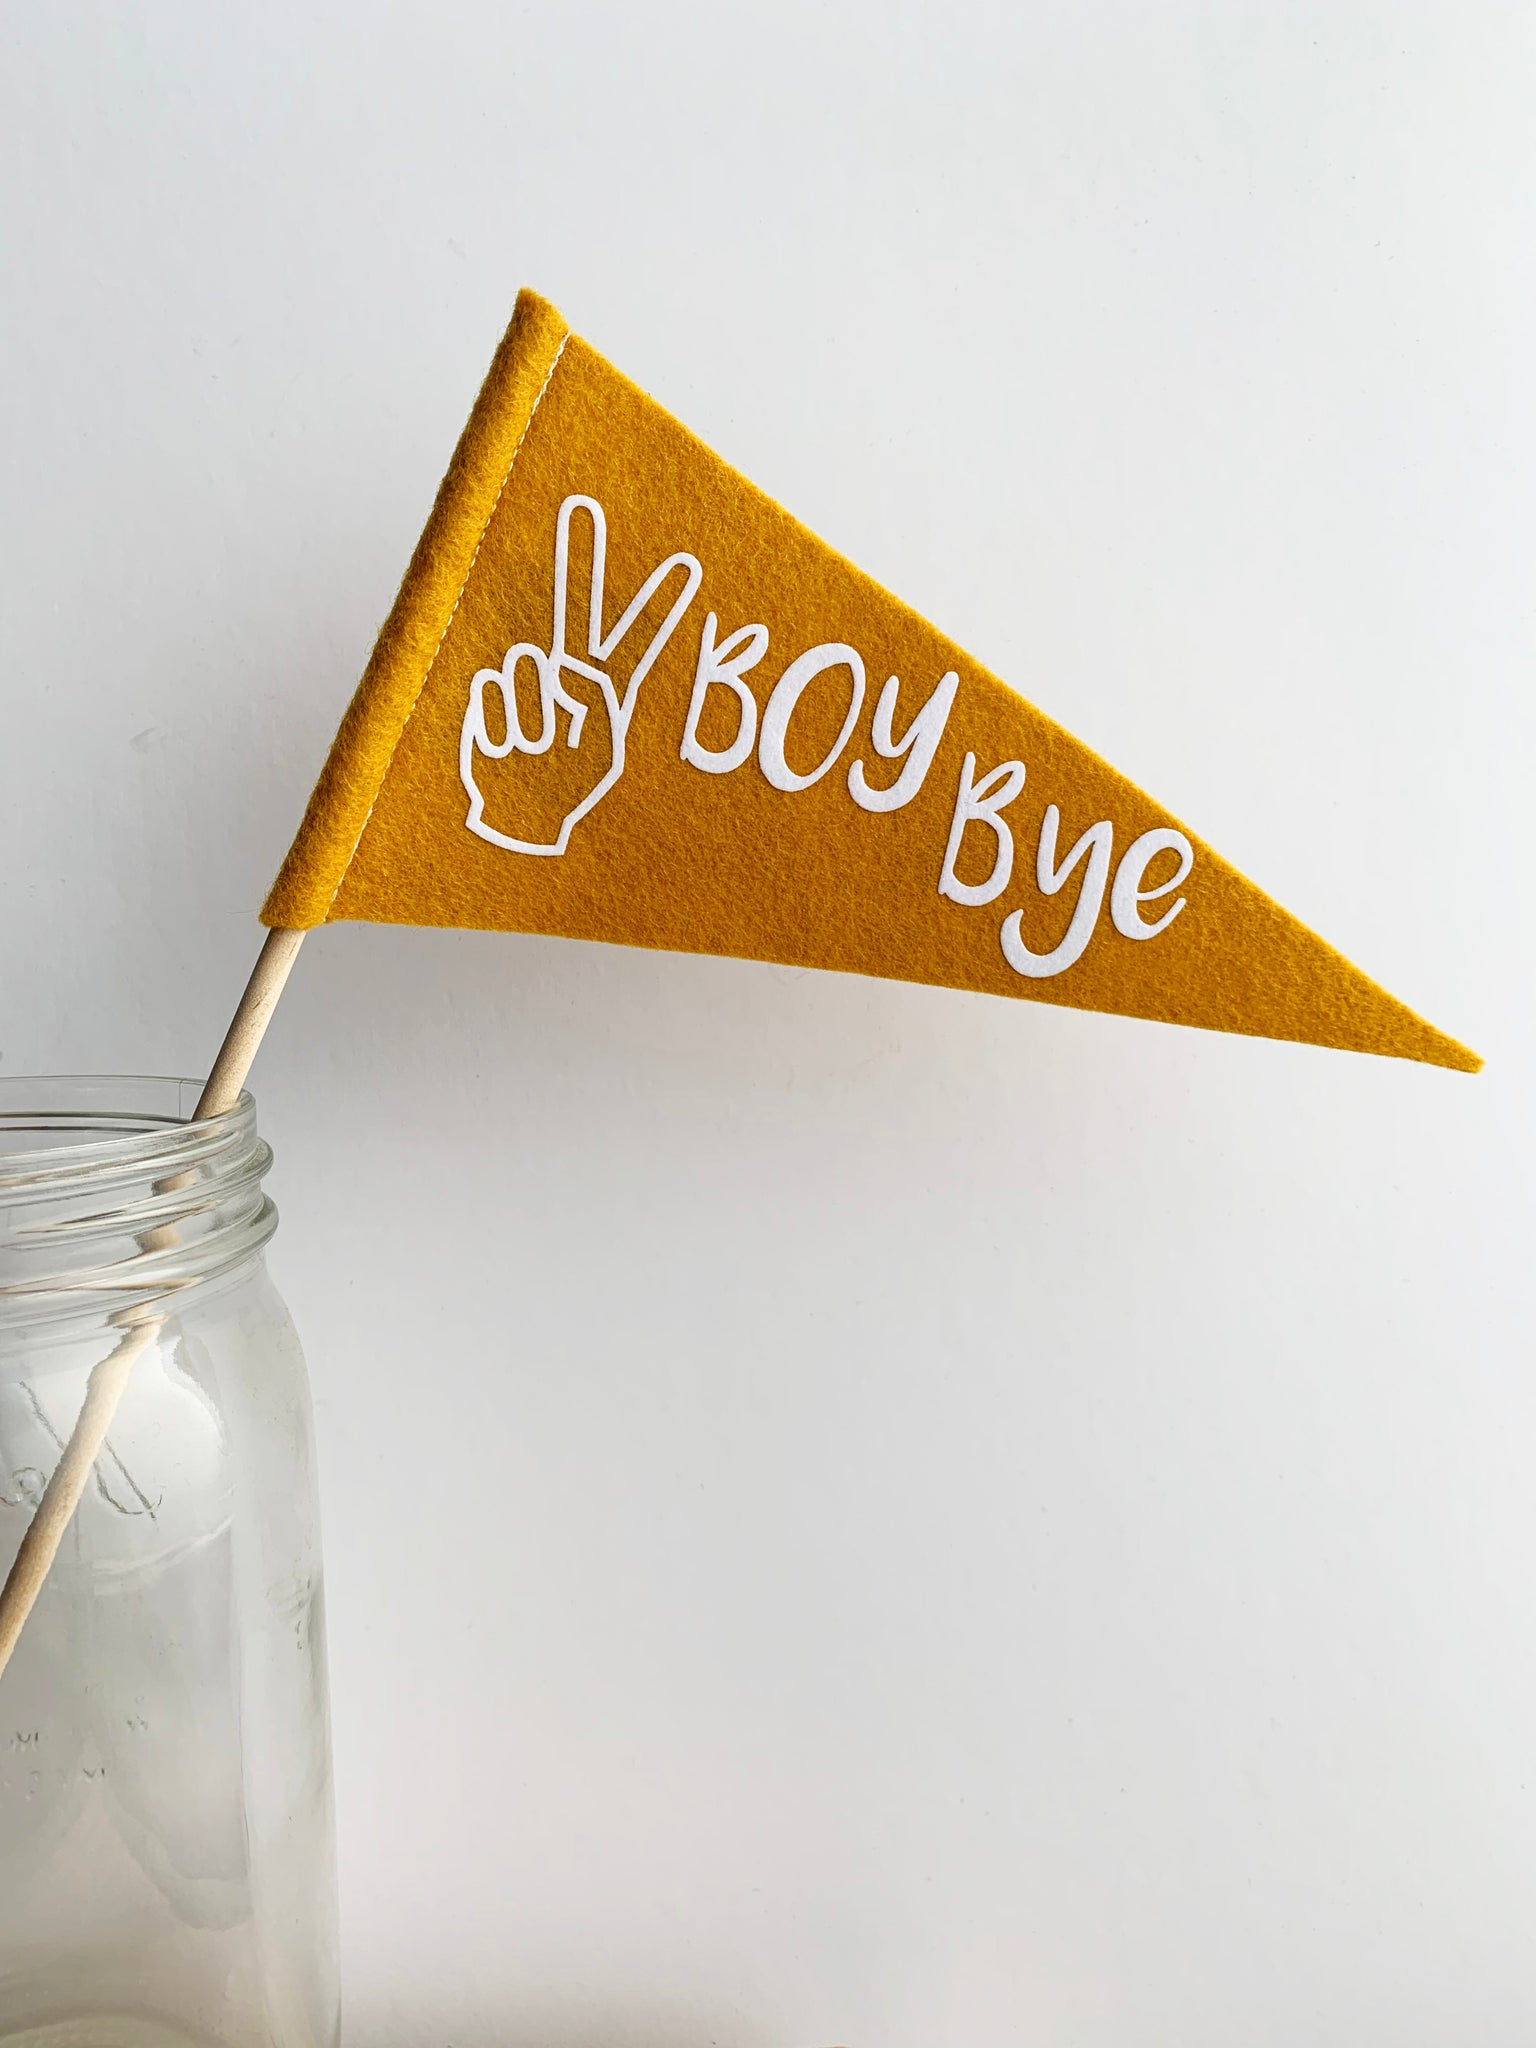 Boy Bye Mini Pennant